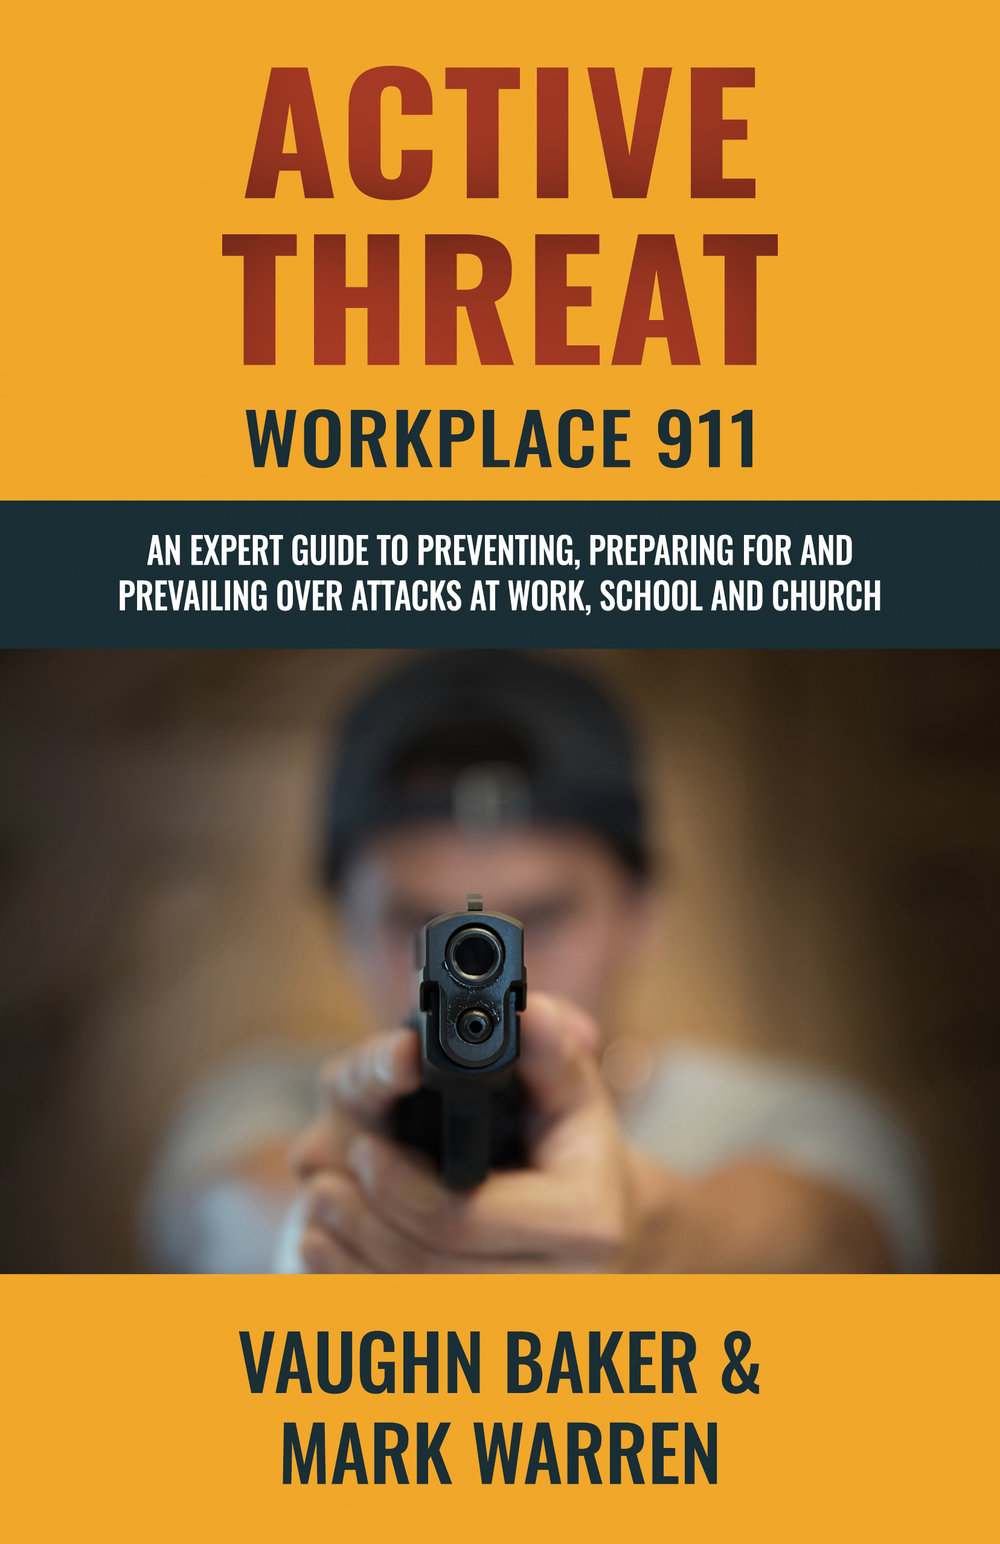 Active Threat: Workplace 911 book by Vaughn Baker and Mark Warren